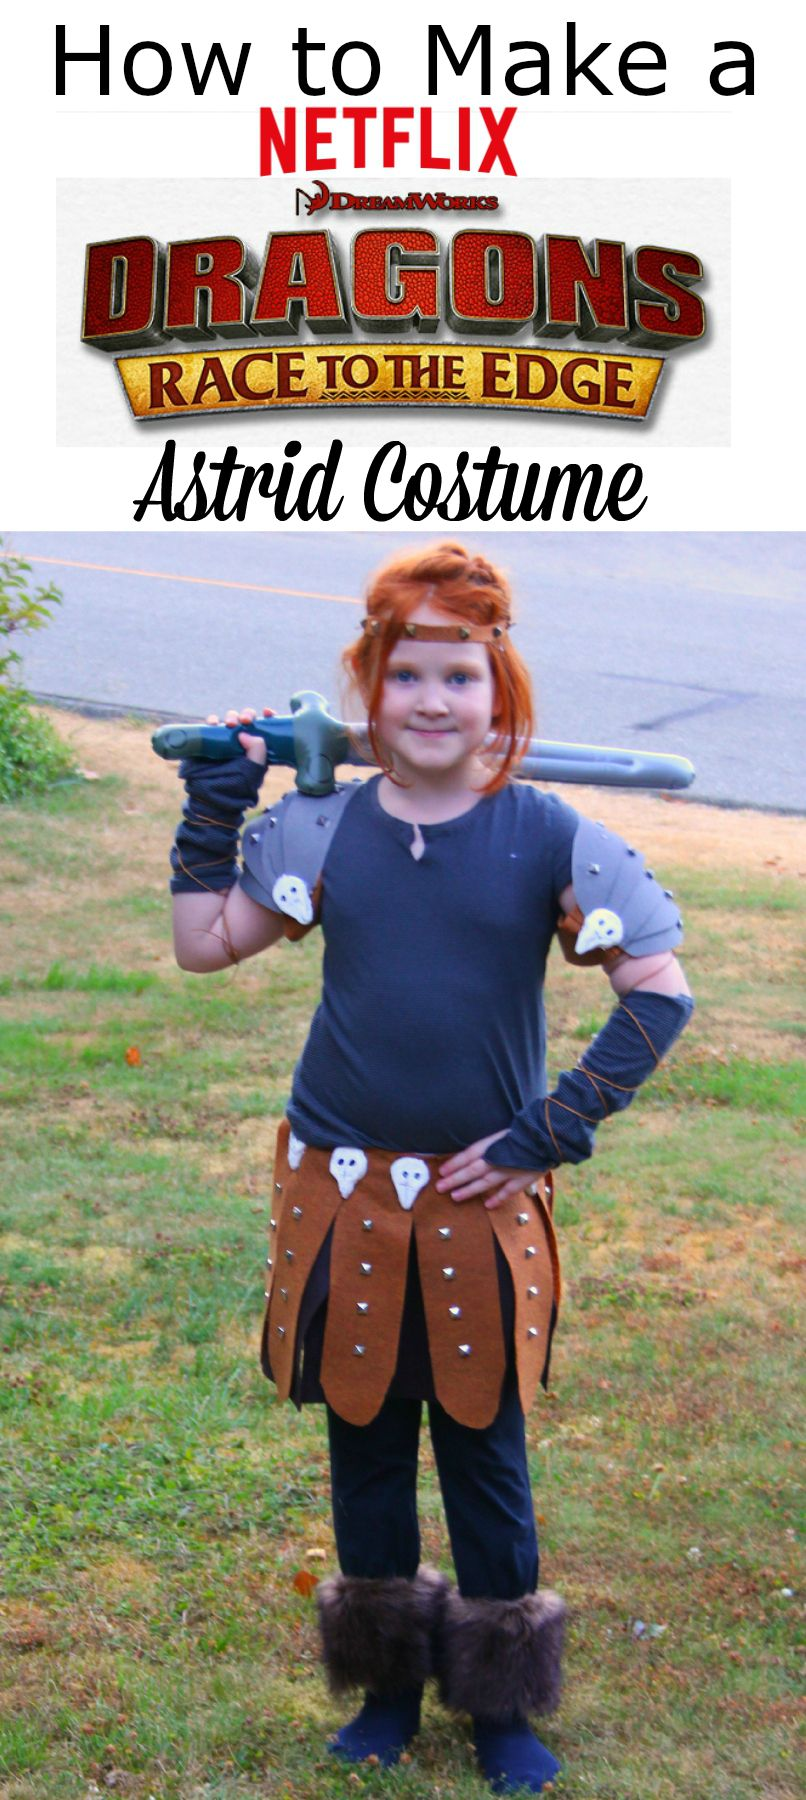 Astrid costume button how to train your dragon crafts pinterest how to make a dragons astrid costume ccuart Choice Image